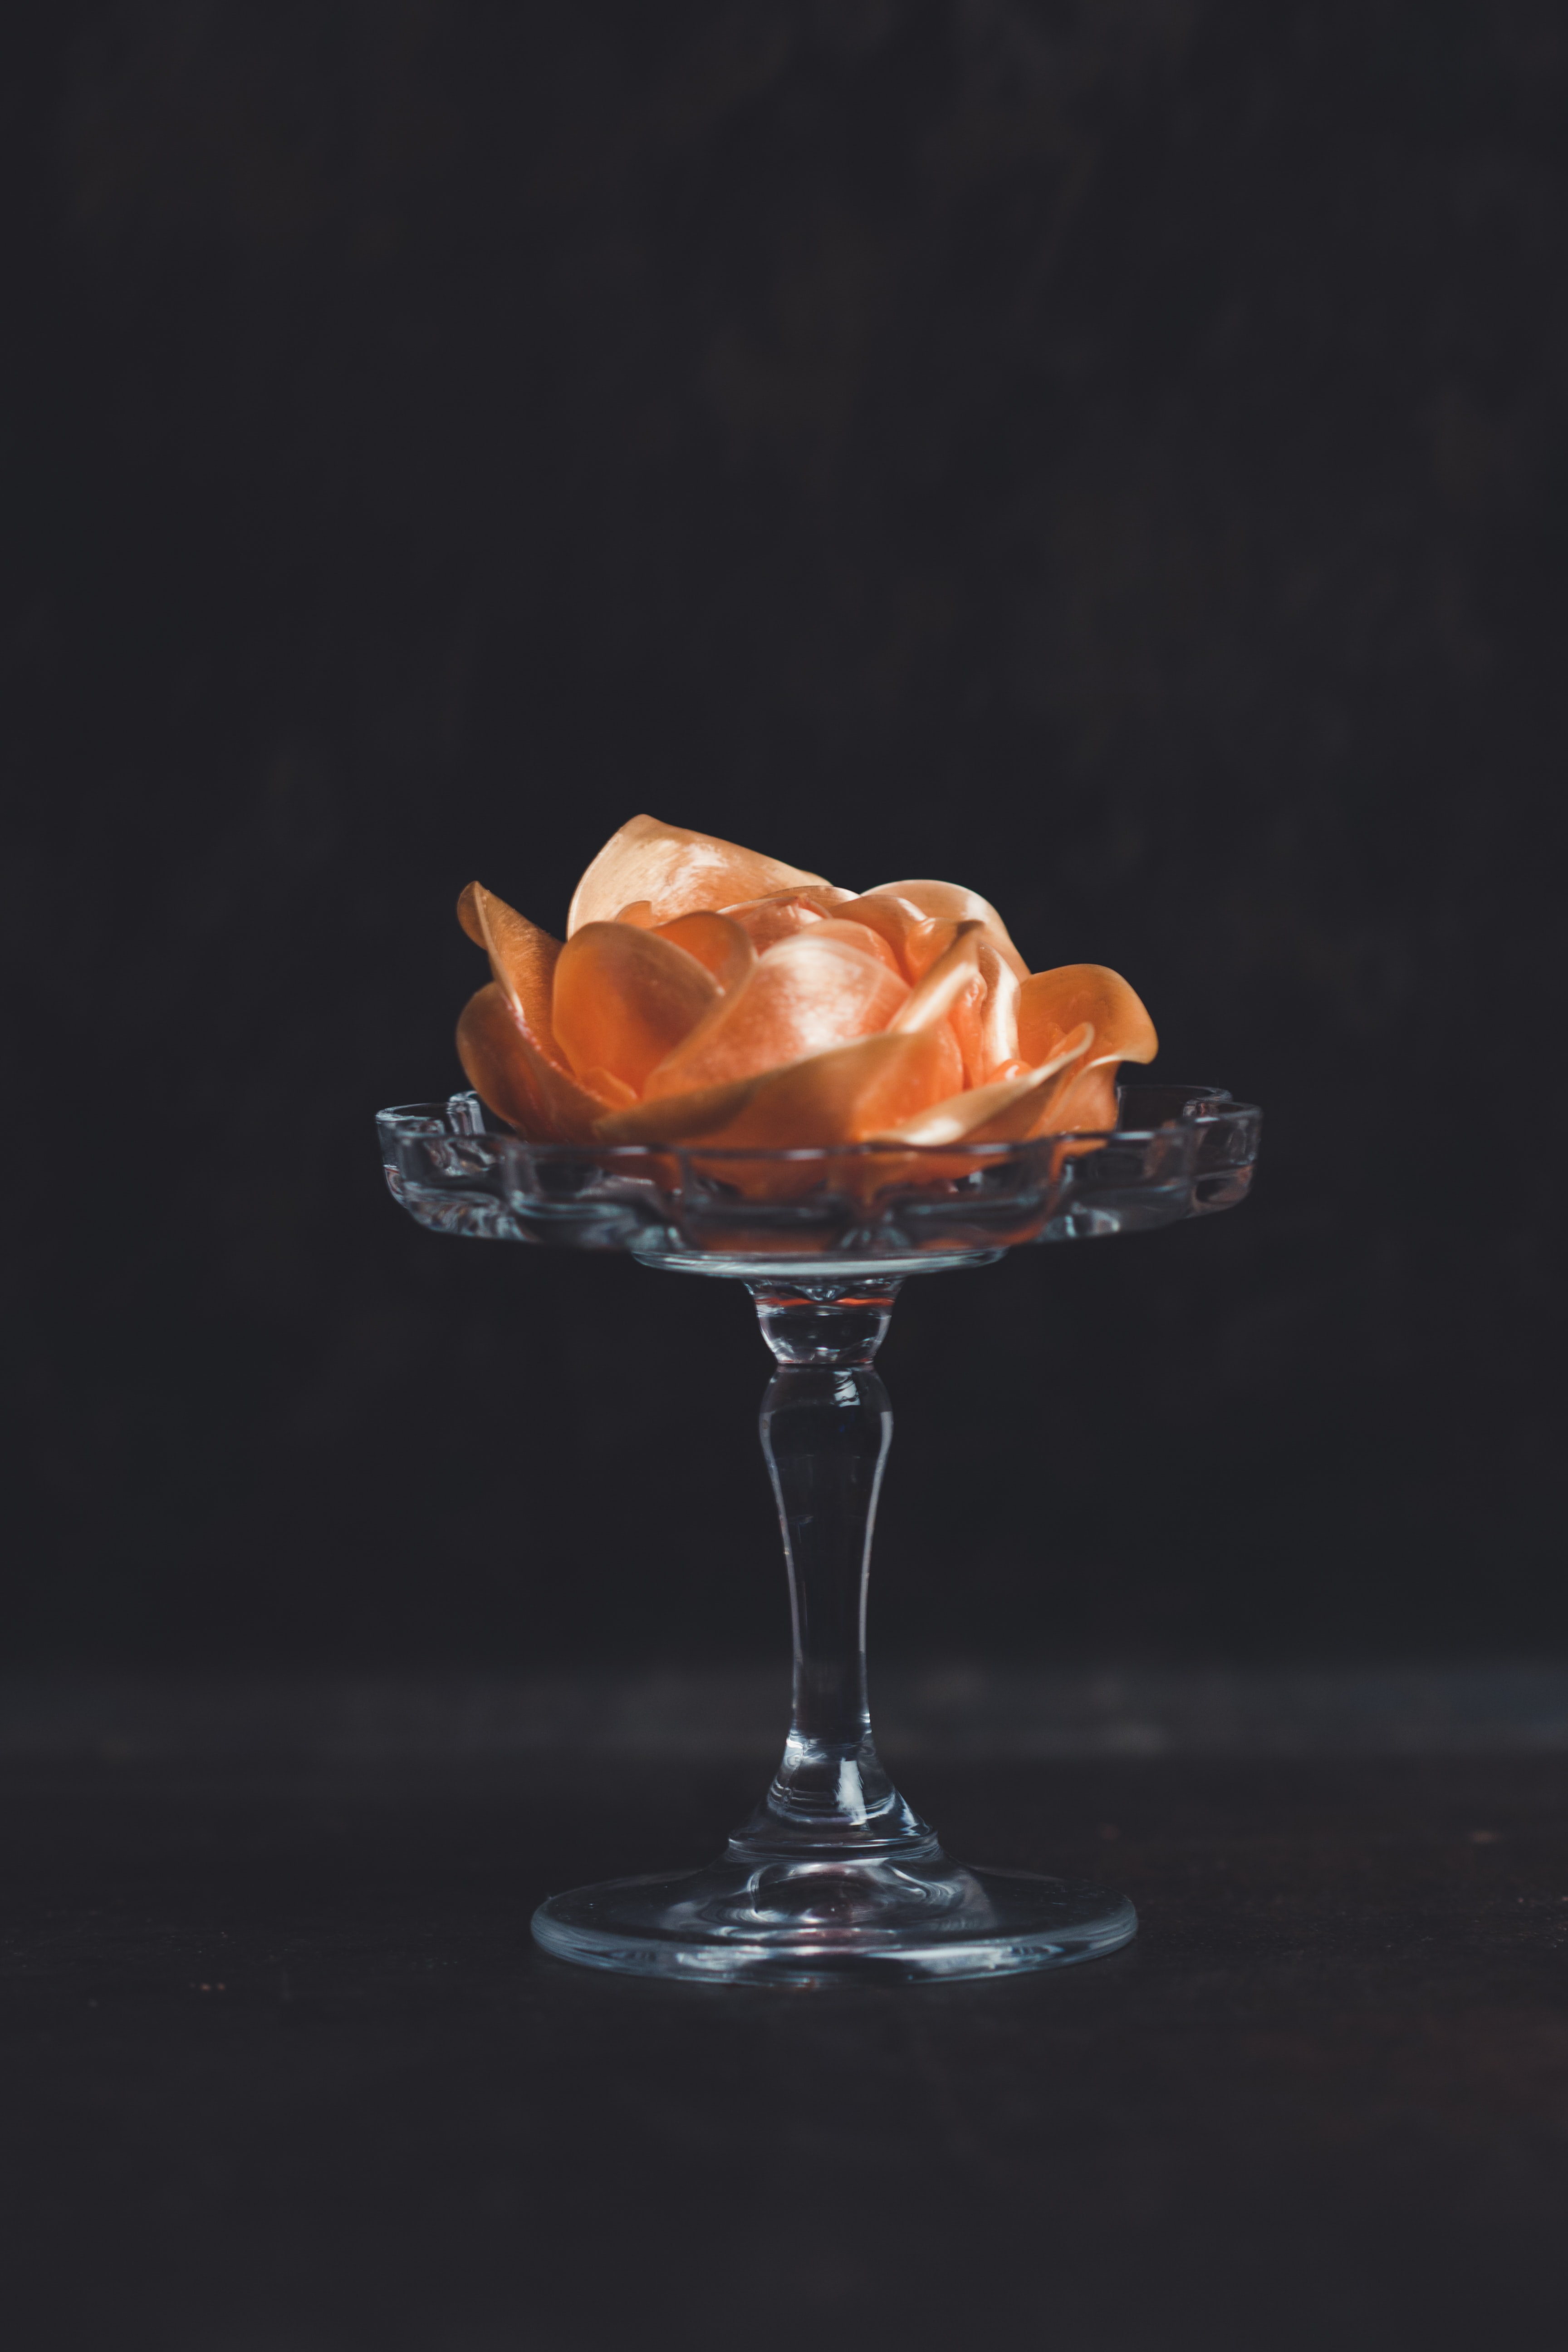 orange flower on glass footed vase against black background